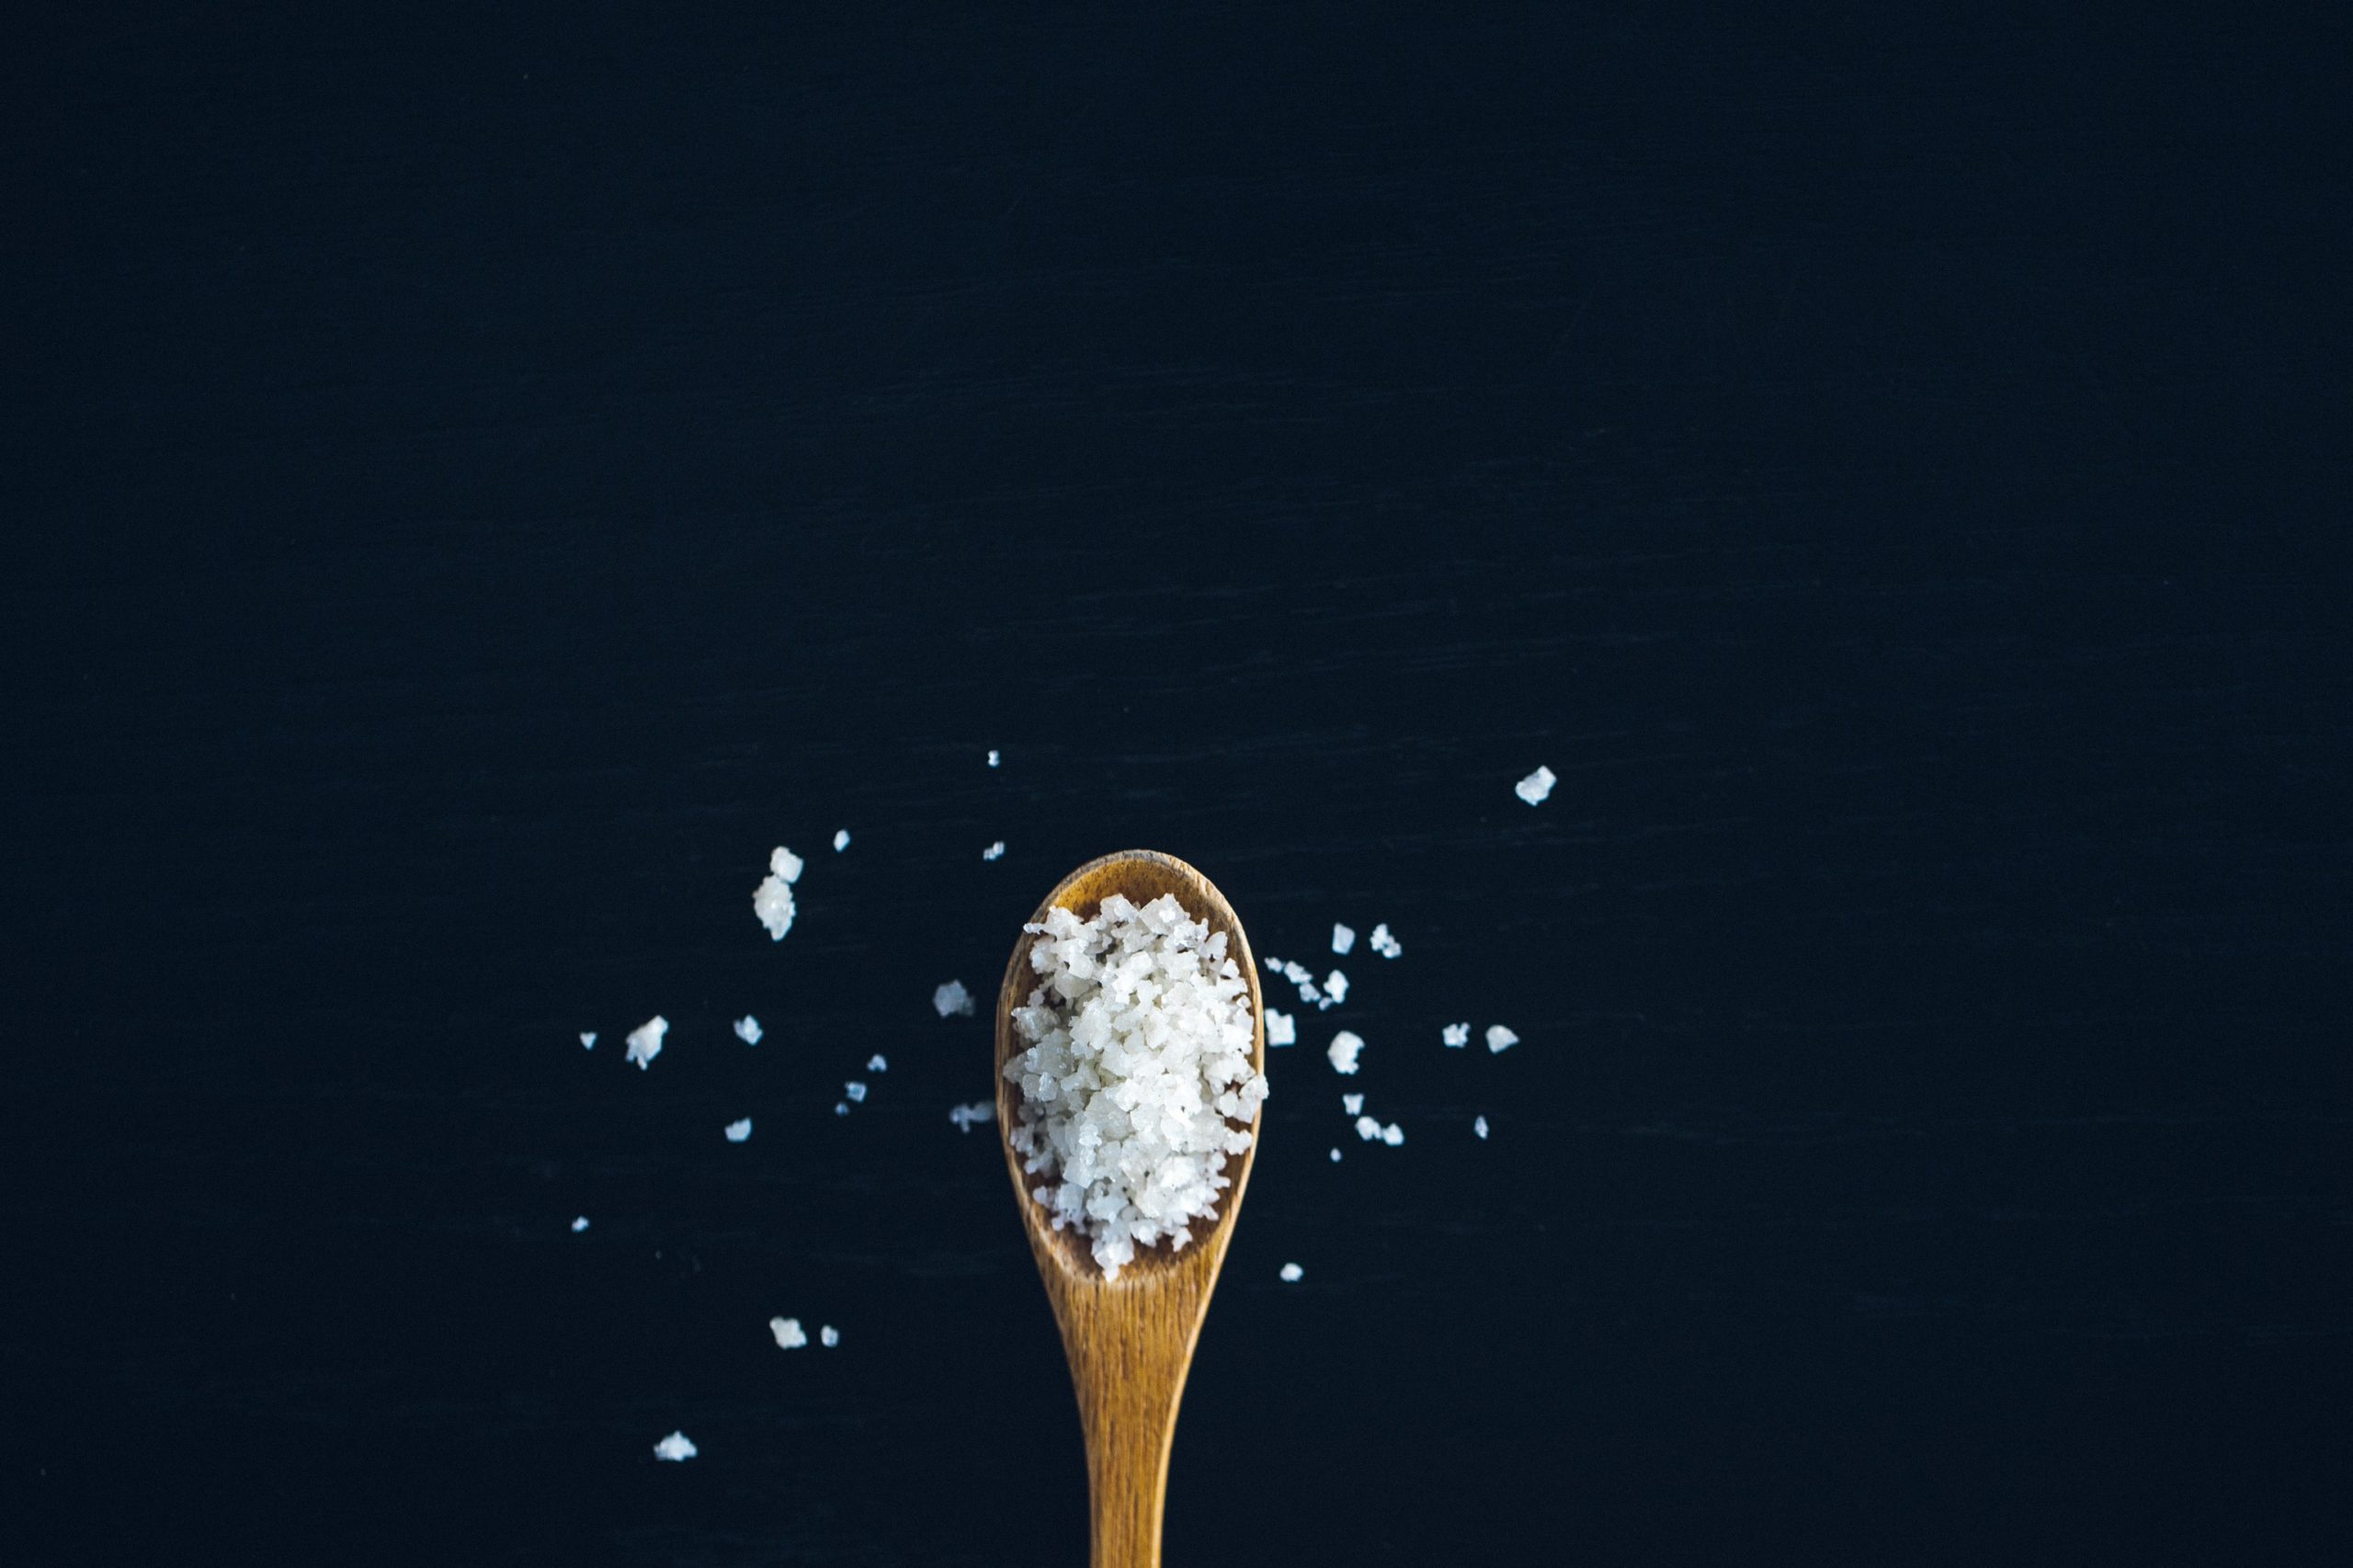 sea salt upon a wooden spatula.